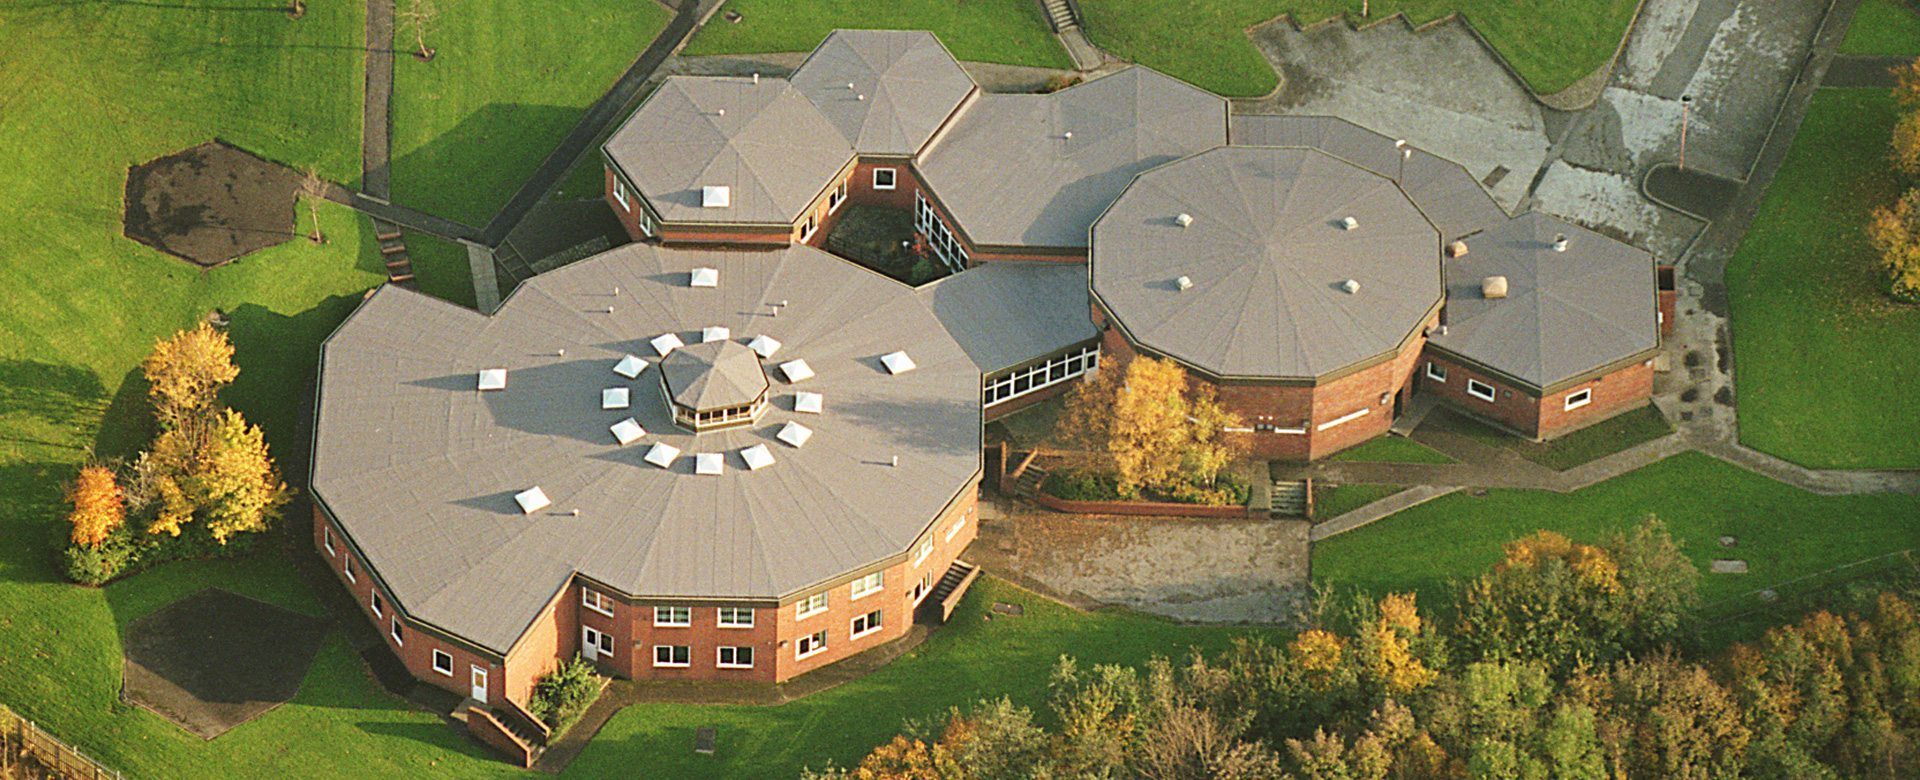 Fulwood Roofing Hodge Clough School